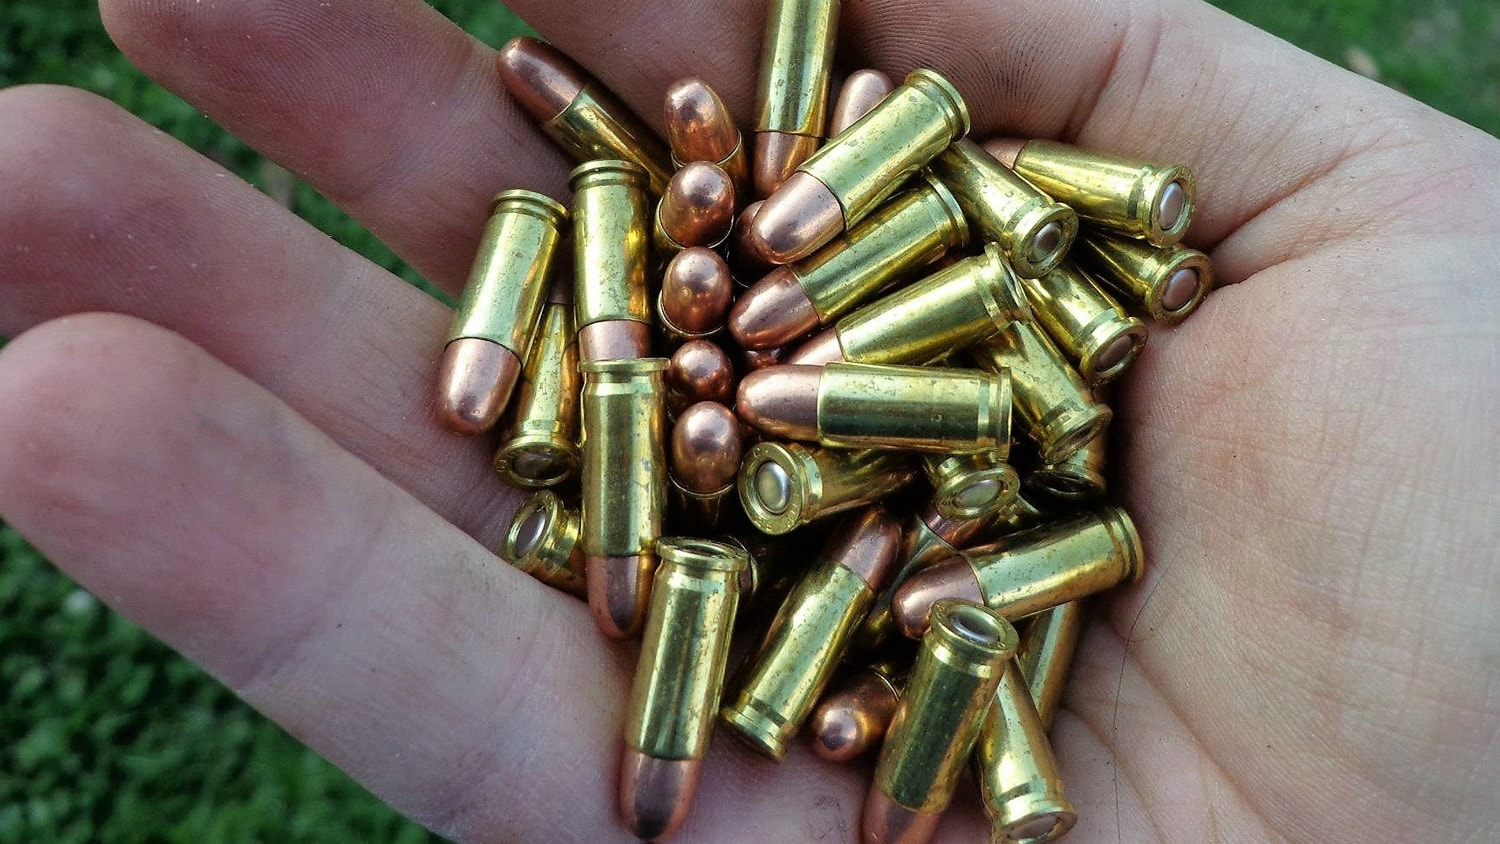 The 25 ACP is tiny. A box of fifty goes right into my hand. The relative low power of the round had very little to do with its demise. (Photo: Terril Herbert)